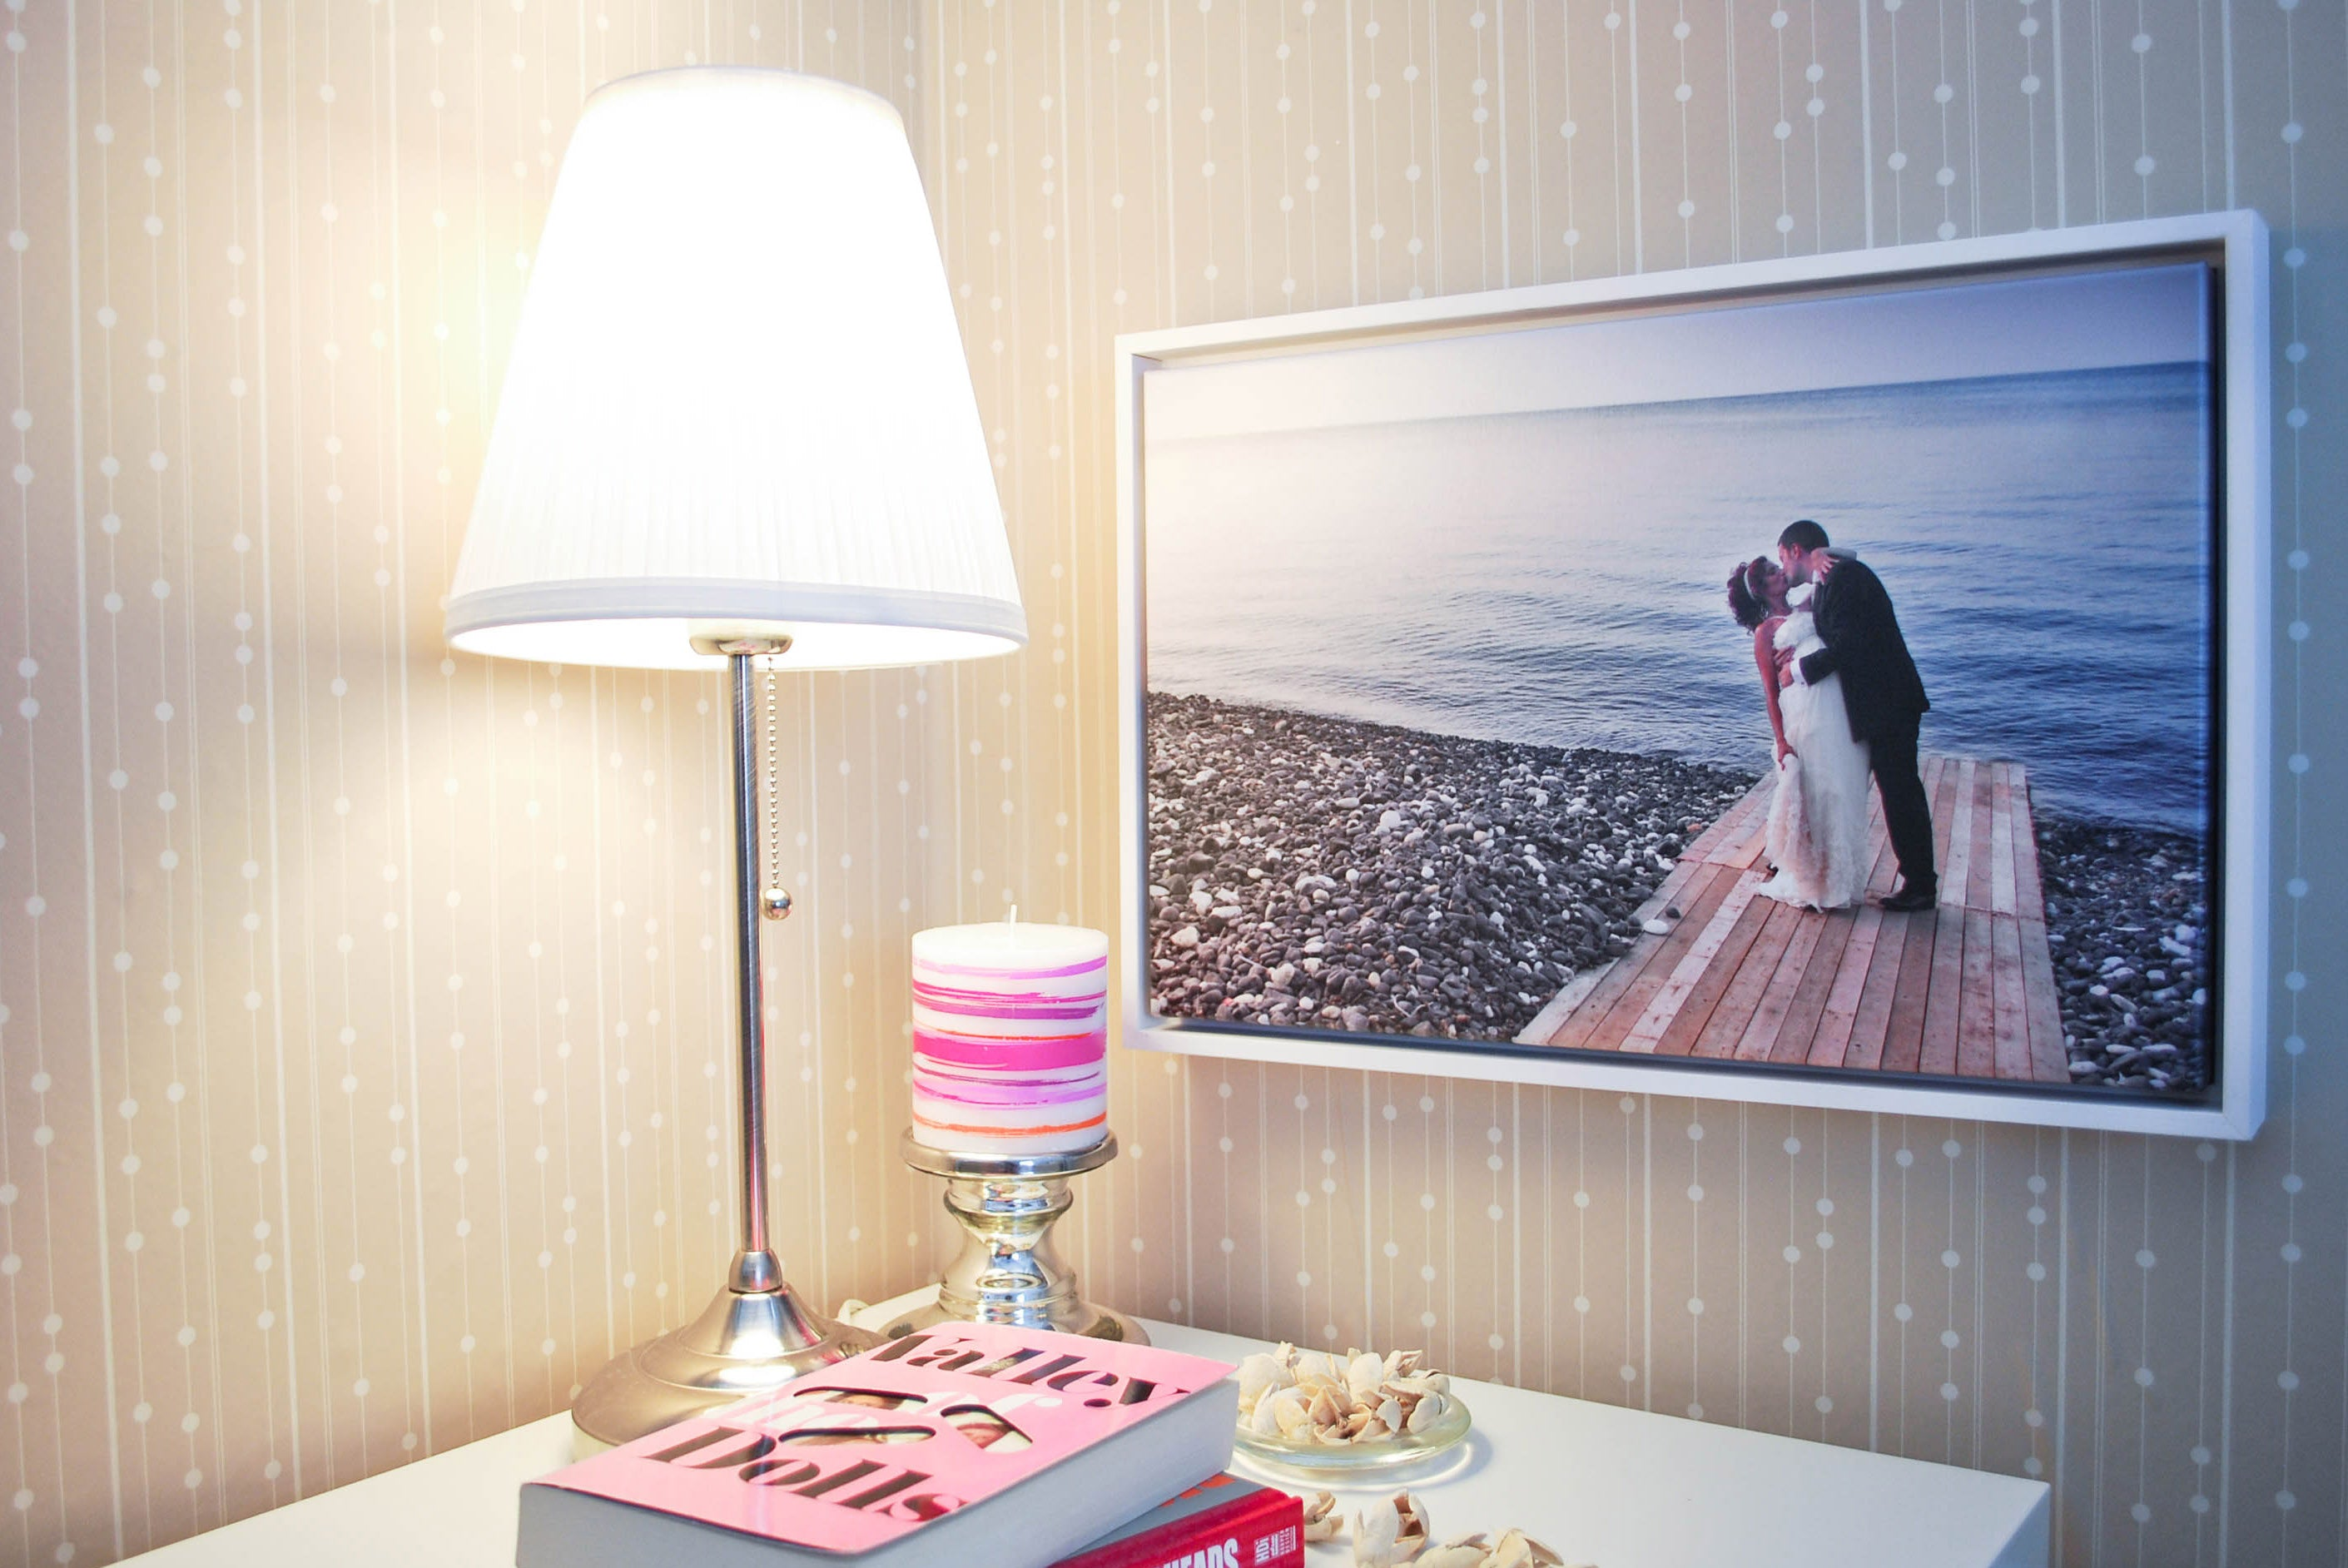 Wedding Photo Printed on Canvas with White Frame